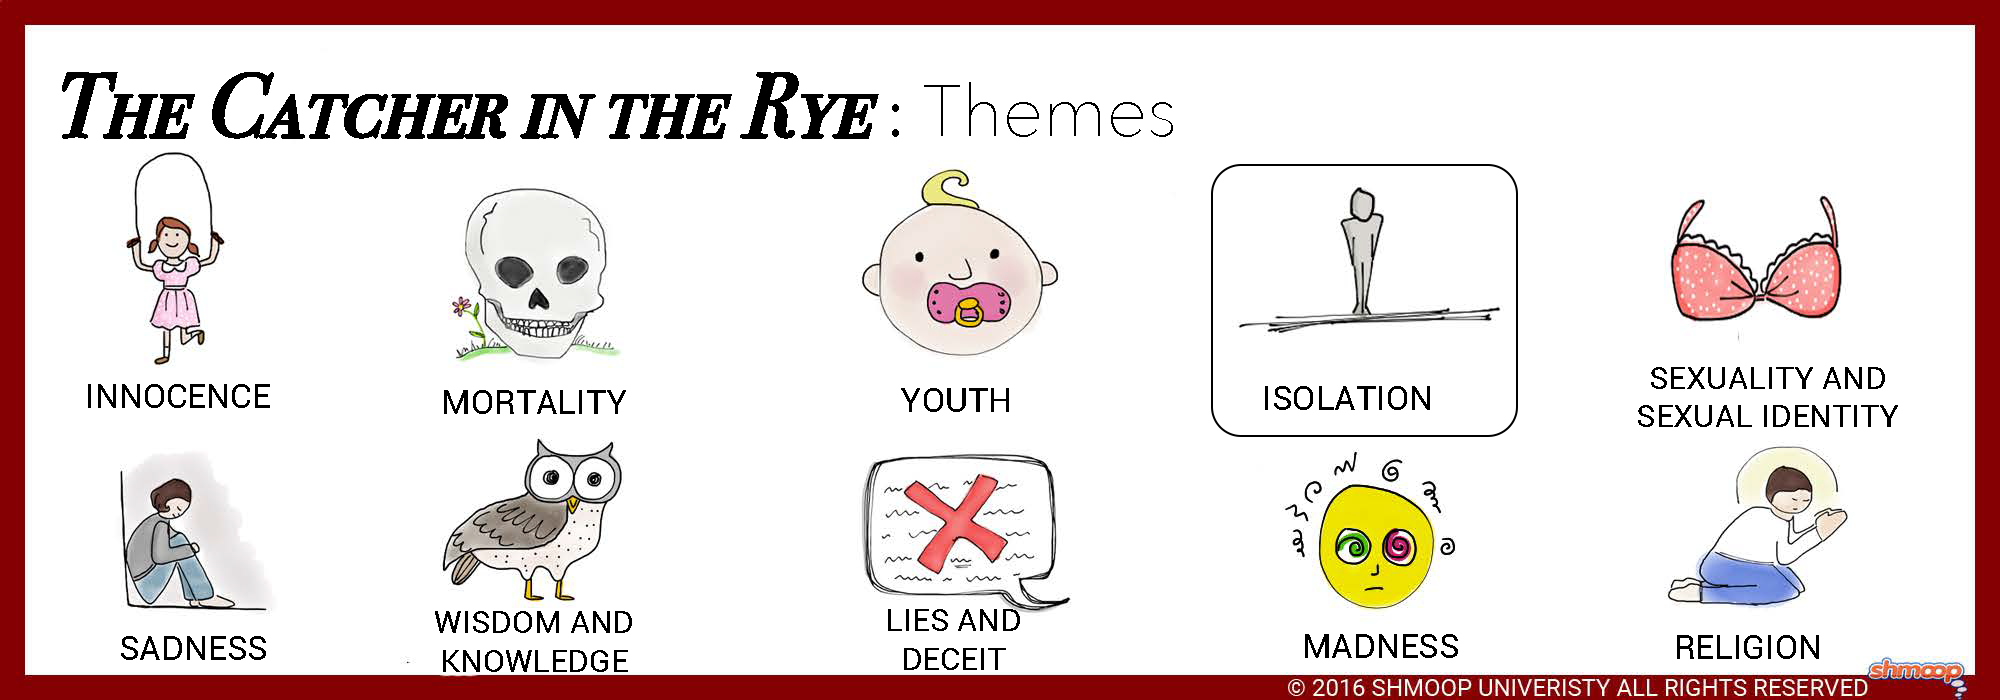 essay catcher in the rye essay on diwali short essay about diwali  the catcher in the rye theme of isolation